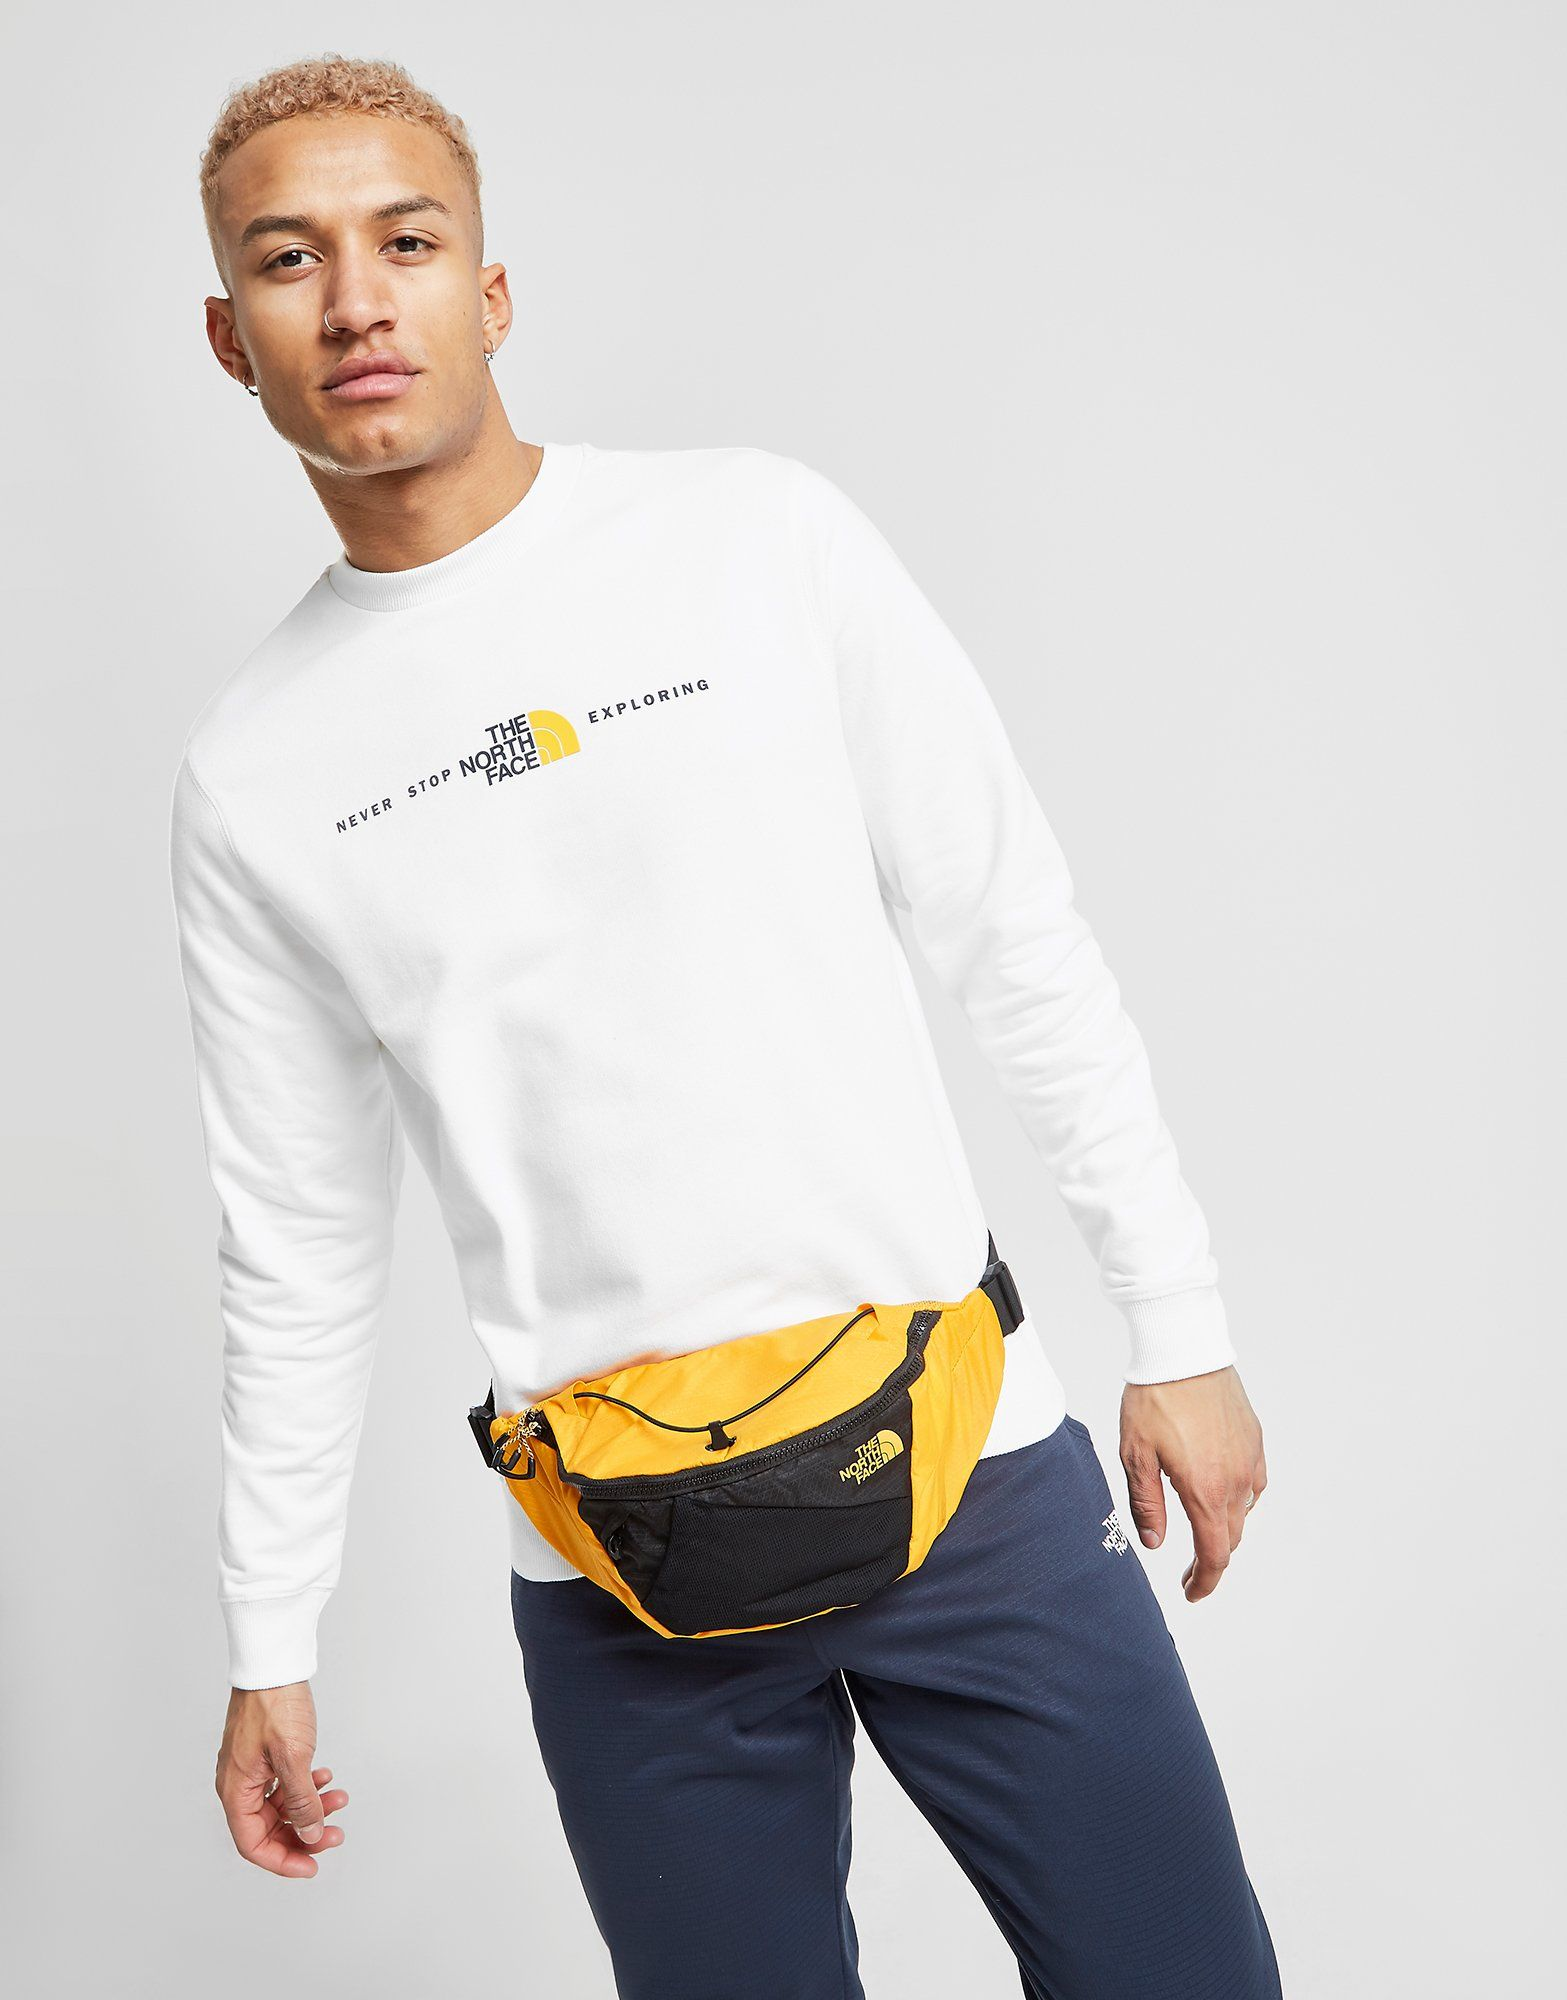 The North Face Never Stop Exploring Crew Sweatshirt by The North Face